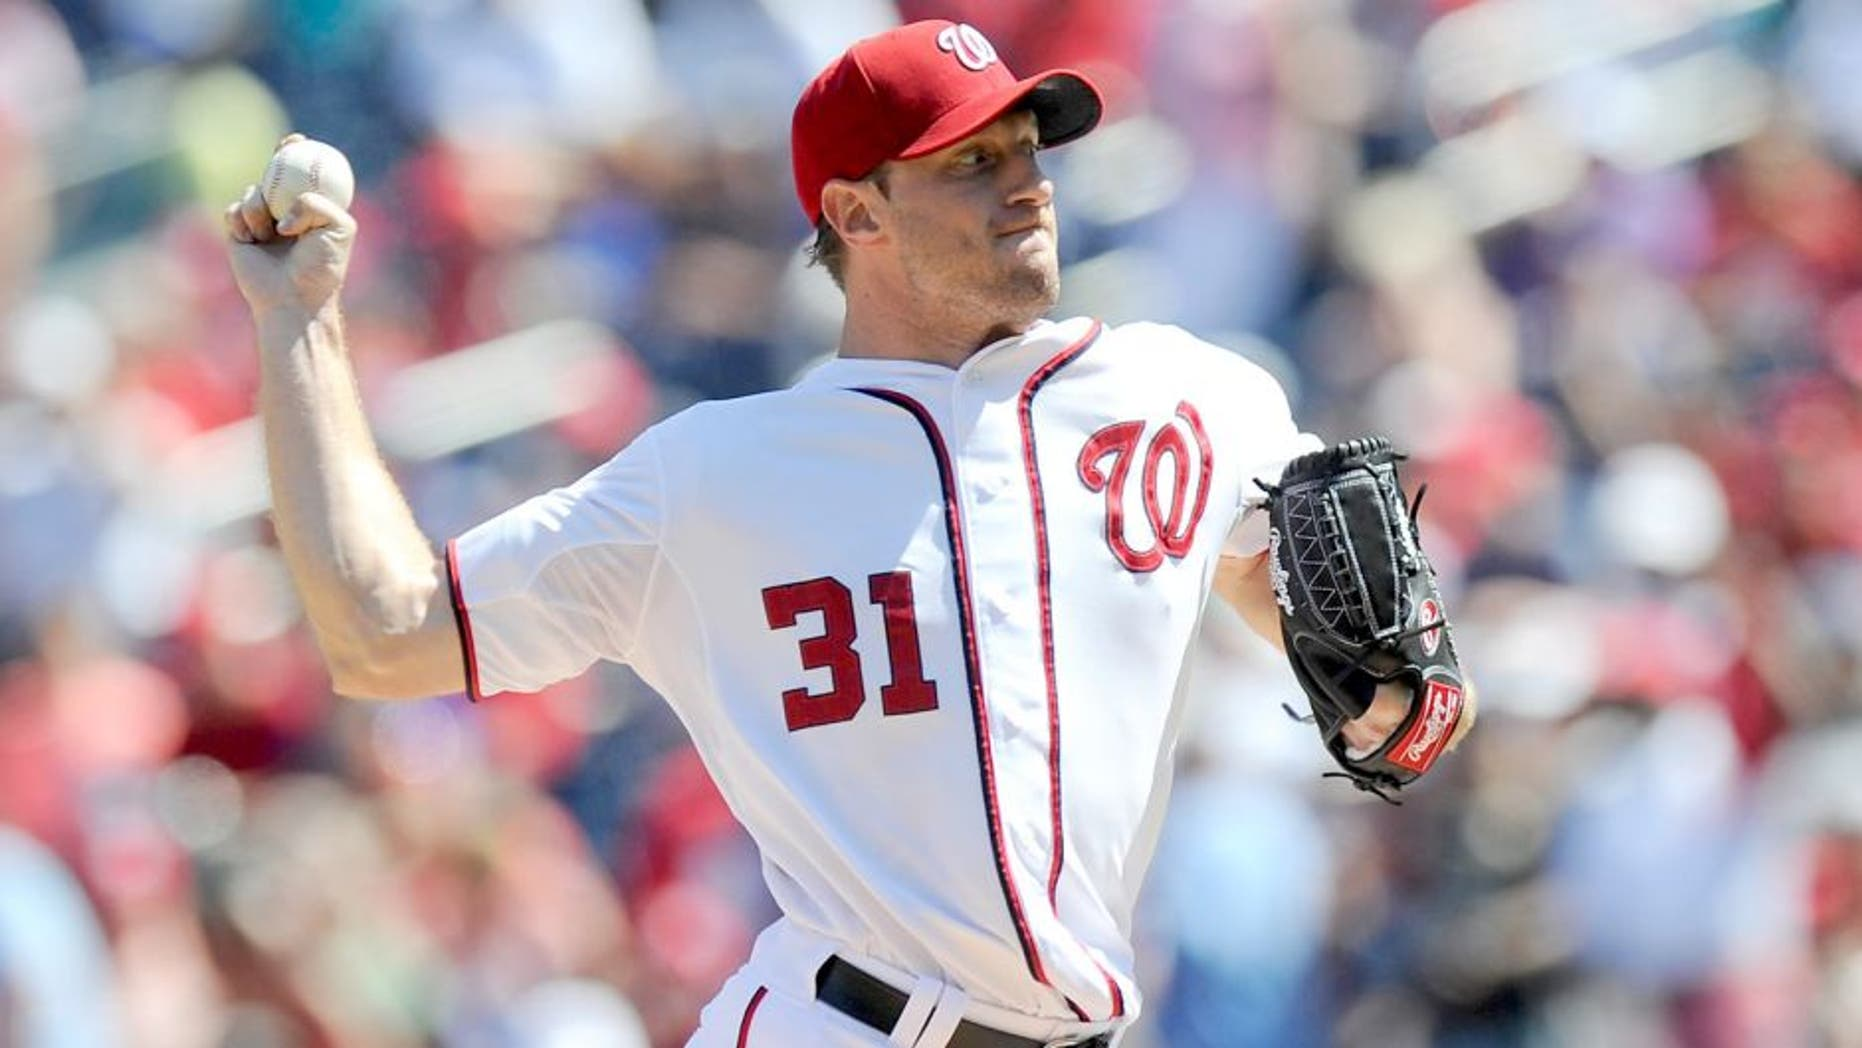 WASHINGTON, DC - SEPTEMBER 07: Max Scherzer #31 of the Washington Nationals pitches in the first inning against the New York Mets at Nationals Park on September 7, 2015 in Washington, DC. (Photo by Greg Fiume/Getty Images)